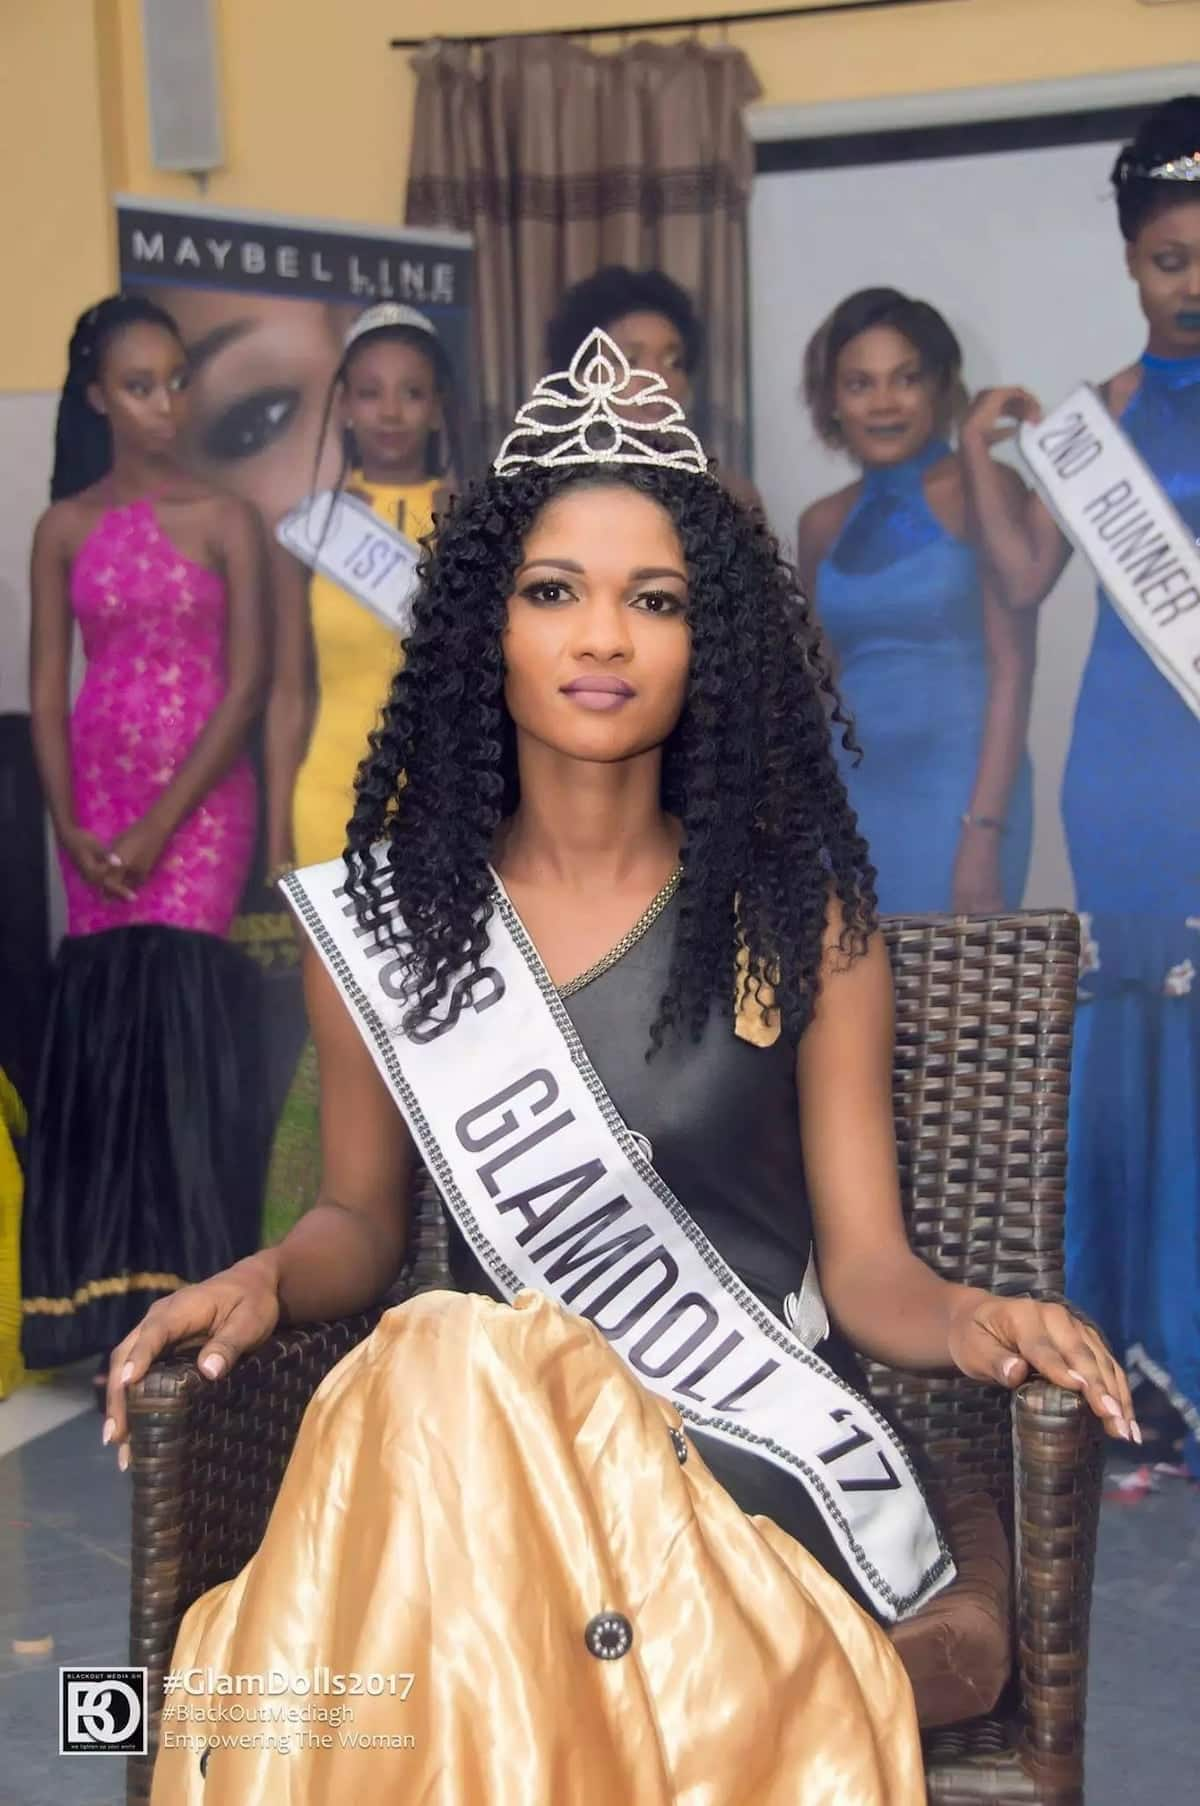 Beauty with a glammed up purpose: Meet the 2017 Glamdol queen turning the lives of young children around